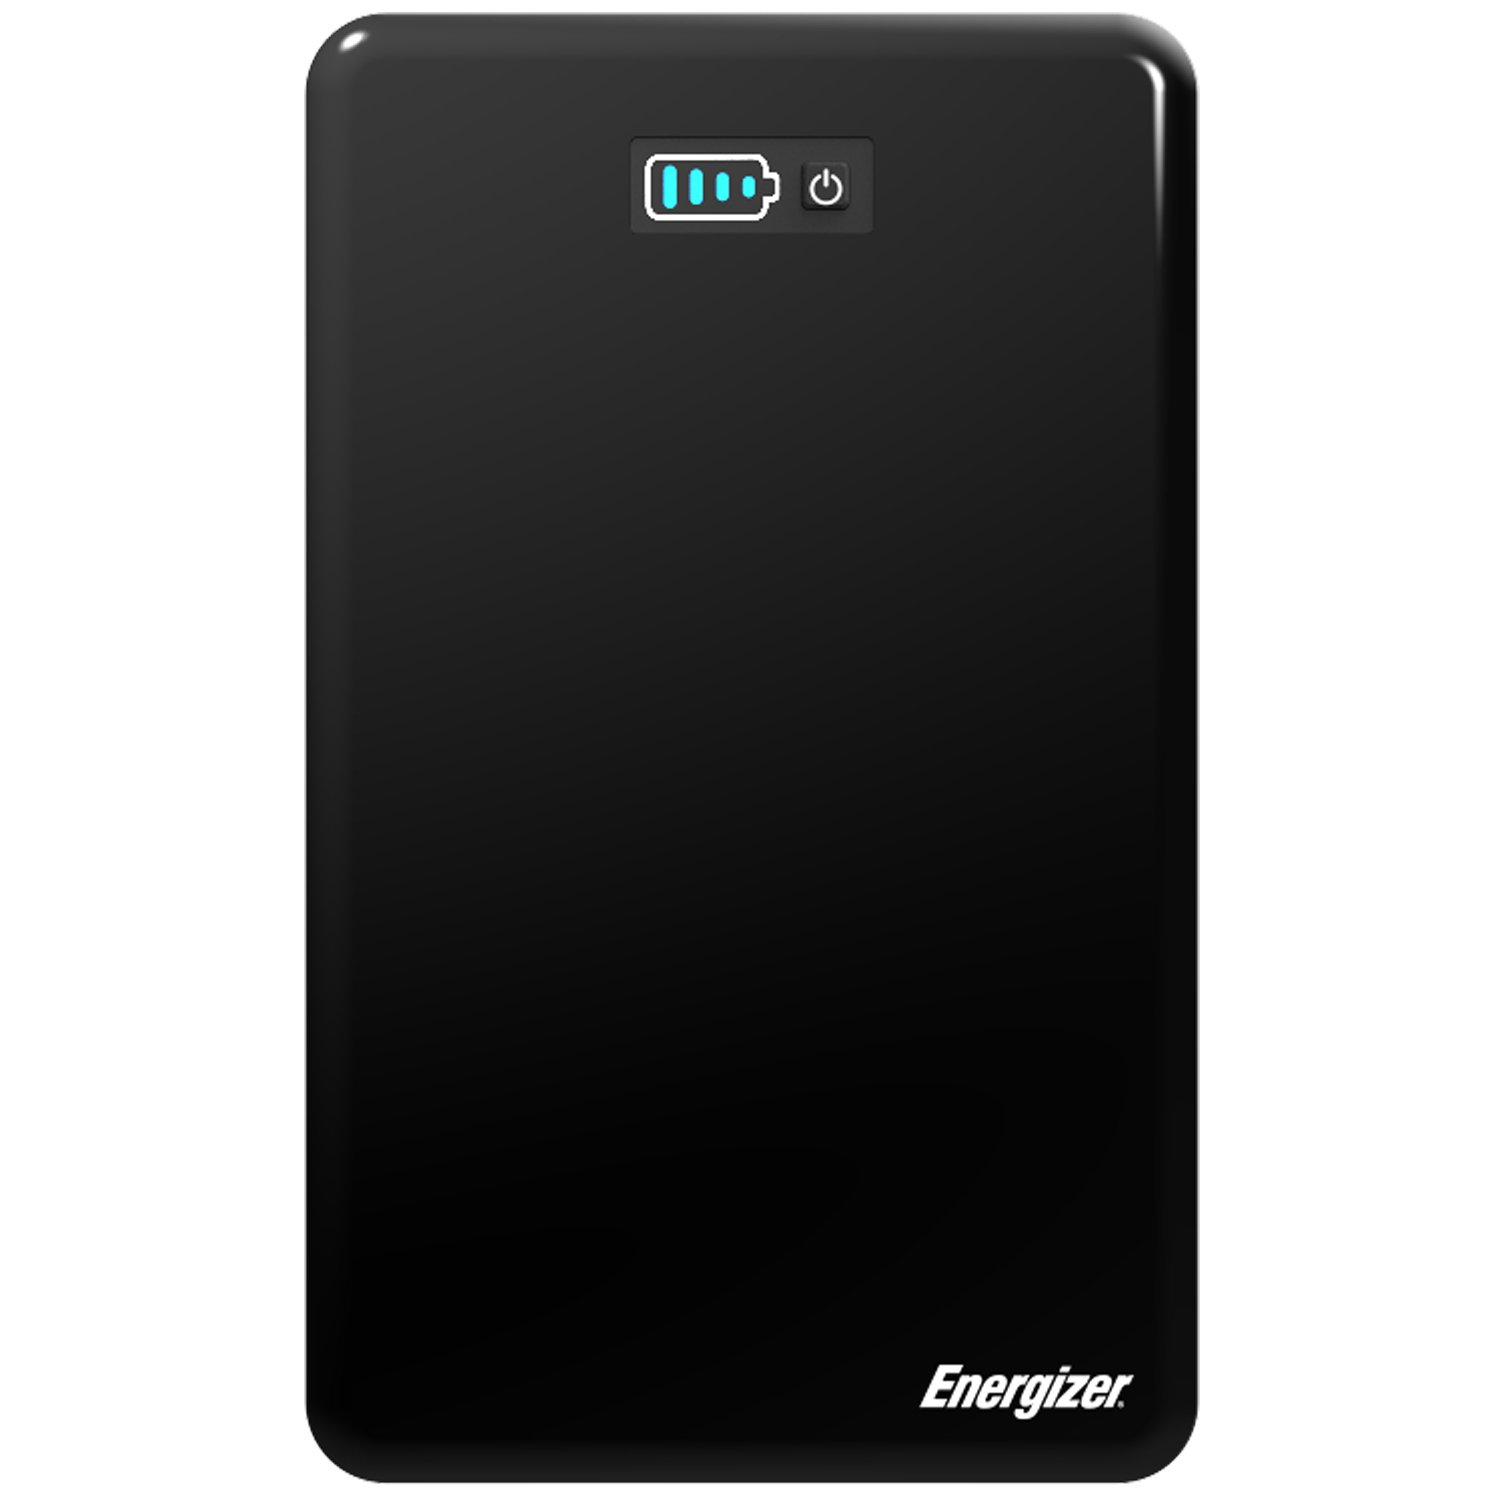 Energizer XP18000AB Universal Power Adapter with External Battery for Tablets/Laptops/Netbooks/Smartphones - Black (XP18000AB) by Energizer